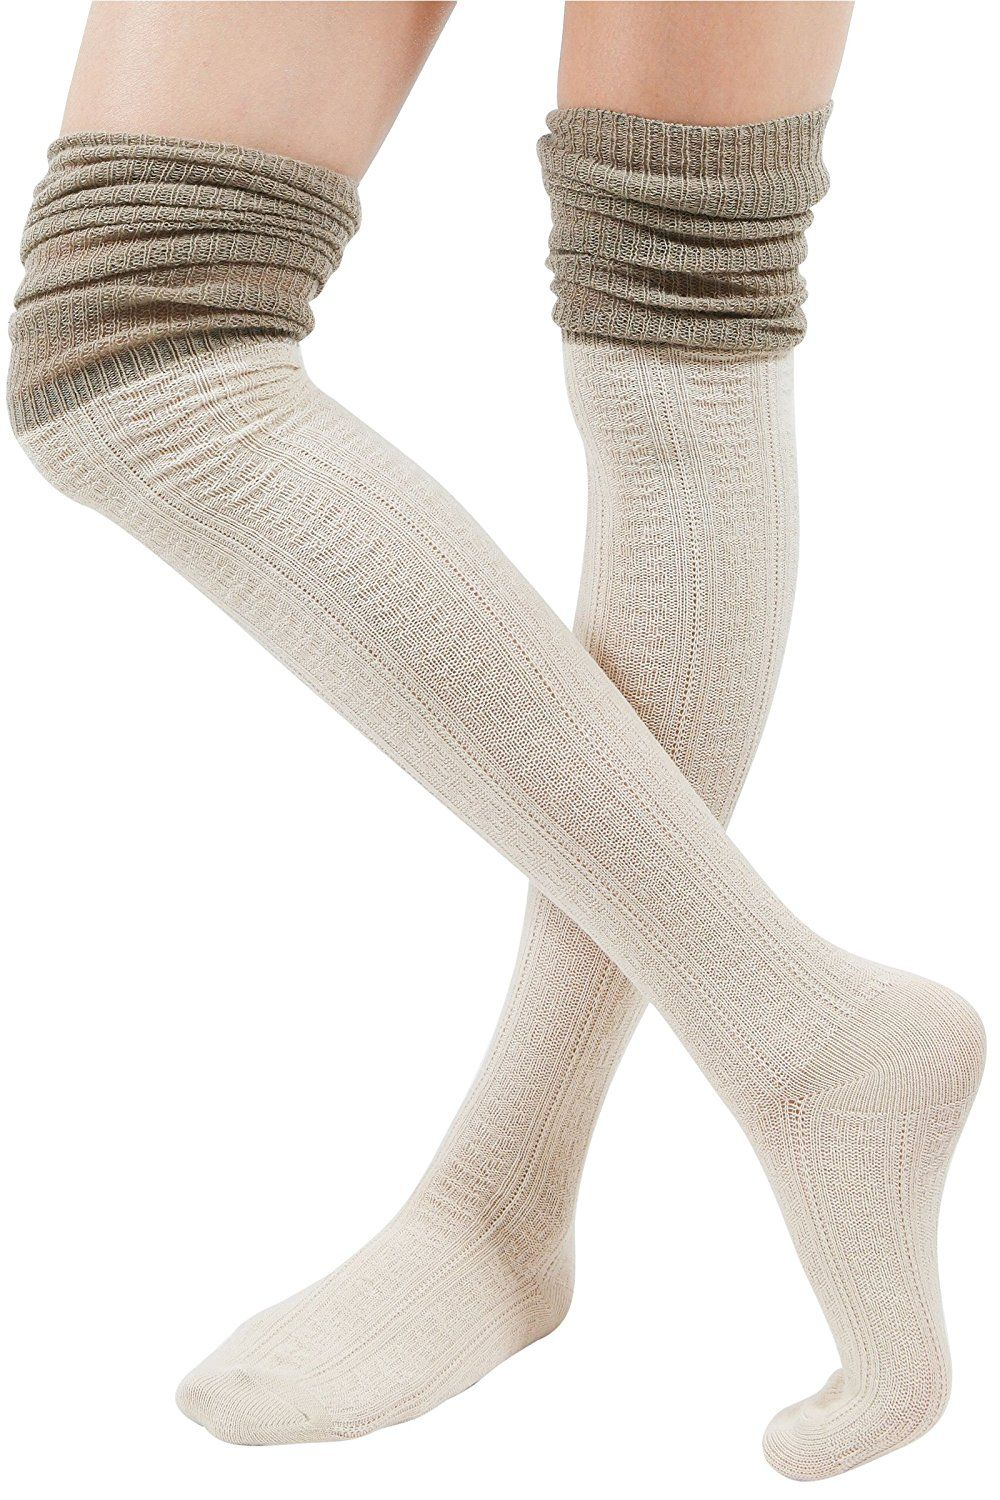 d8a7ef436ed WowFoot Ladies Knit Over The Knee High Socks Women Slouch Stockings  (Two-tone   Ivory)